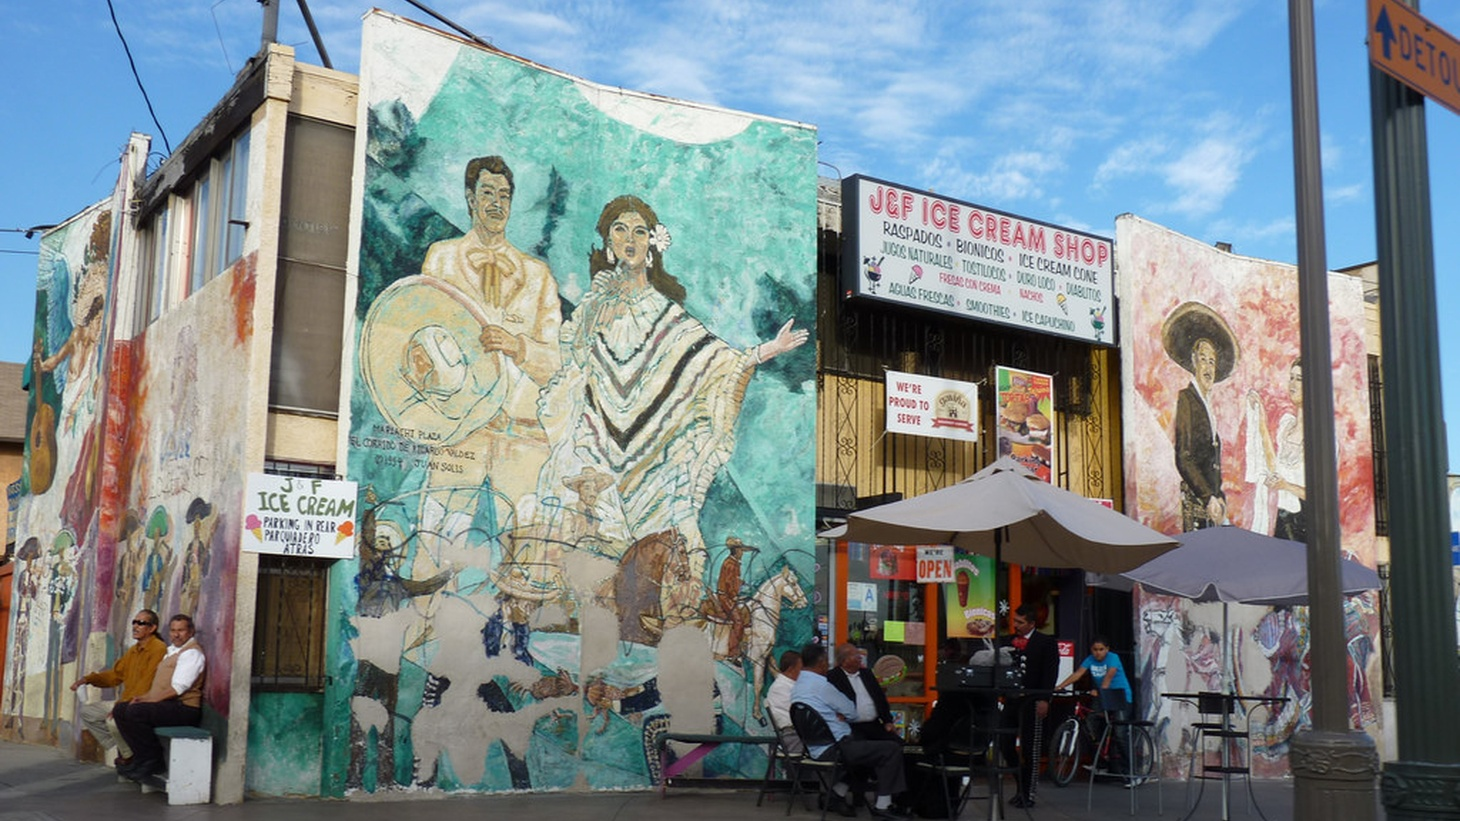 From Santa Monica to Boyle Heights, residents are fighting development.Are their concerns connected? And is slowing growth the answer to maintaining affordable housing across the region? DnA reports from the most and the least affluent communities in the Southland.